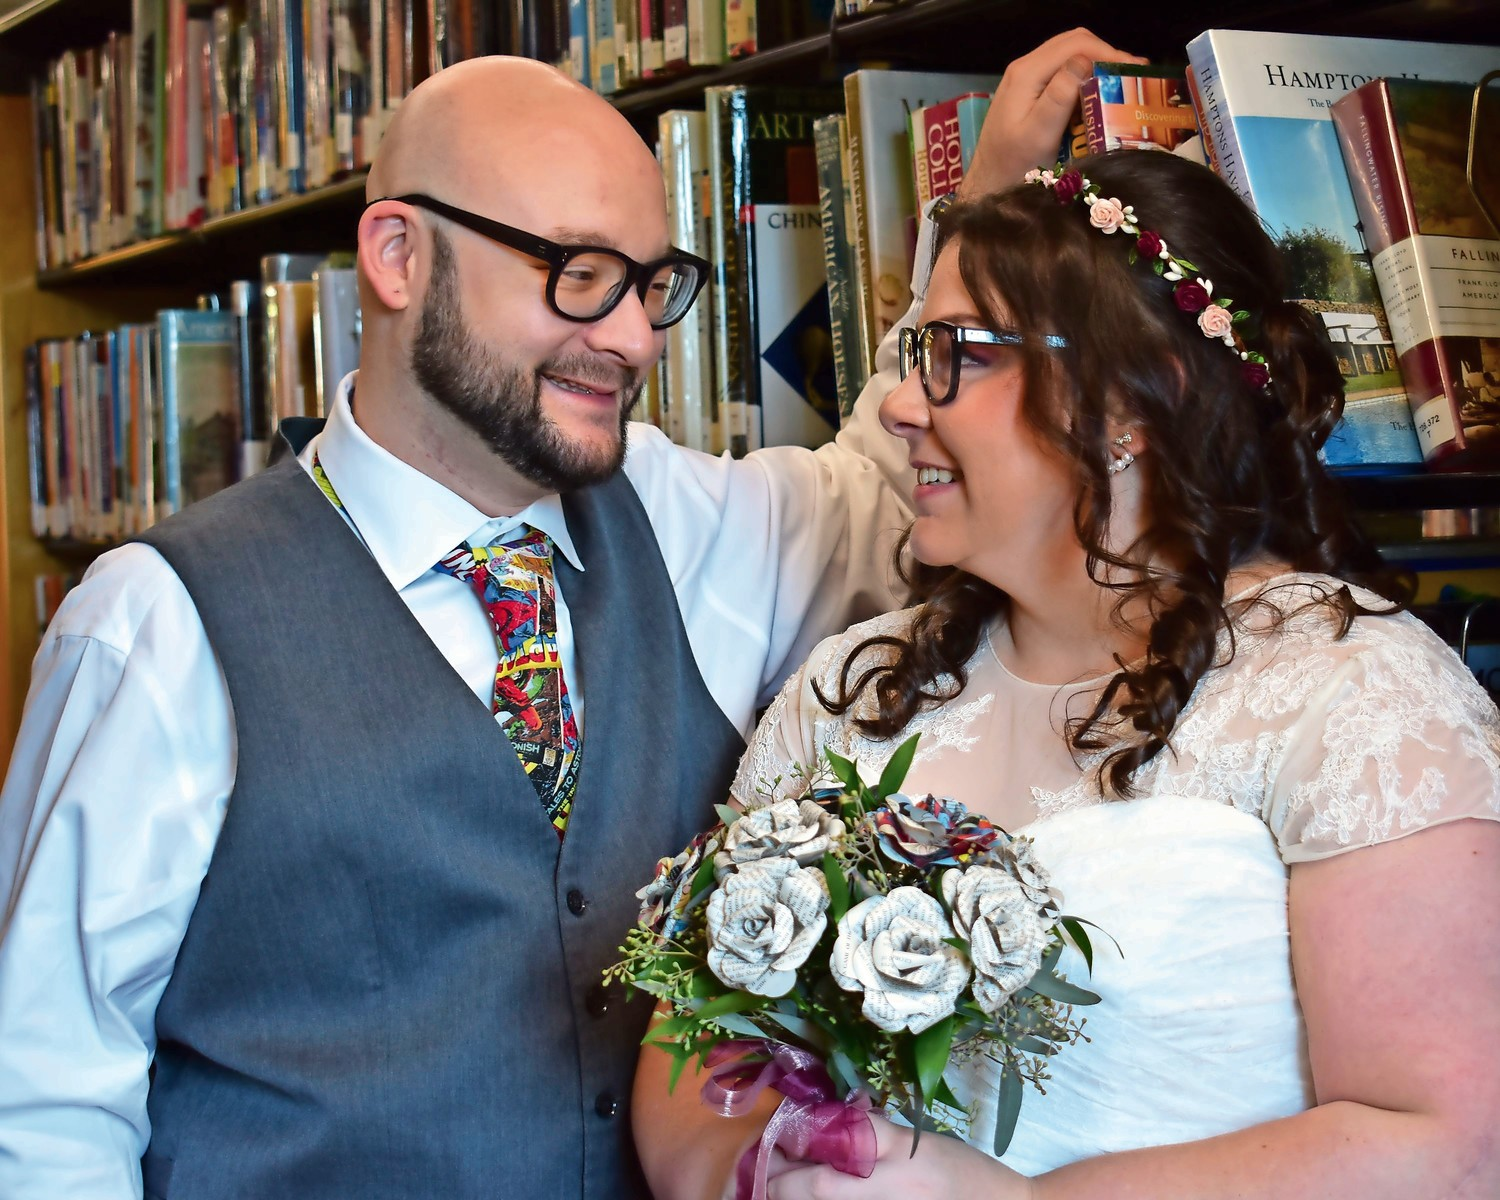 The bride's bouquet was handmade with comic book pages by a seller on Etsy.